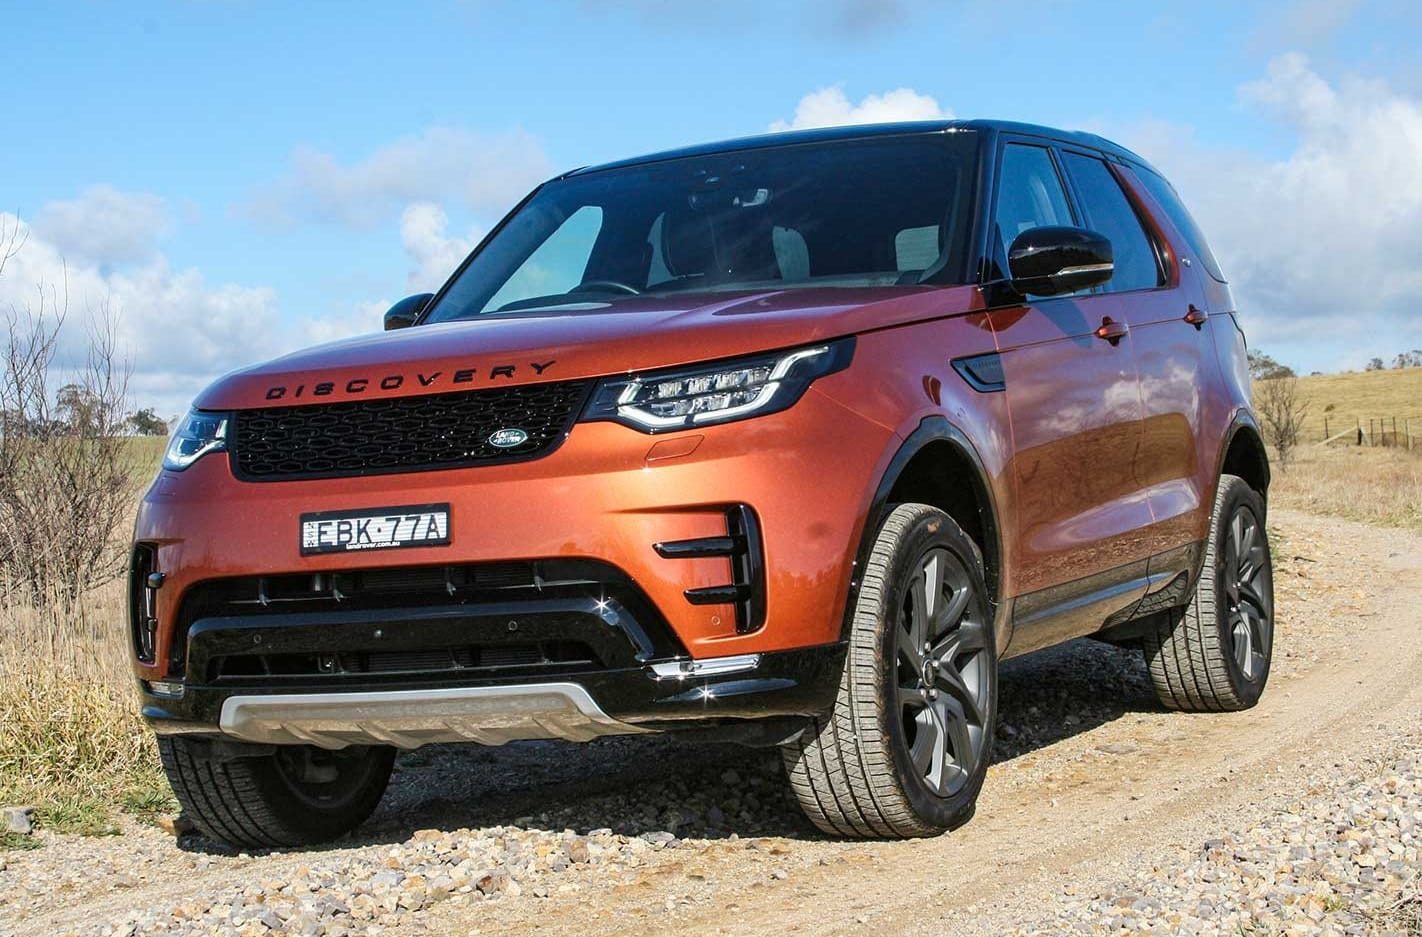 2019 Land Rover Discovery Sd6 4x4 review